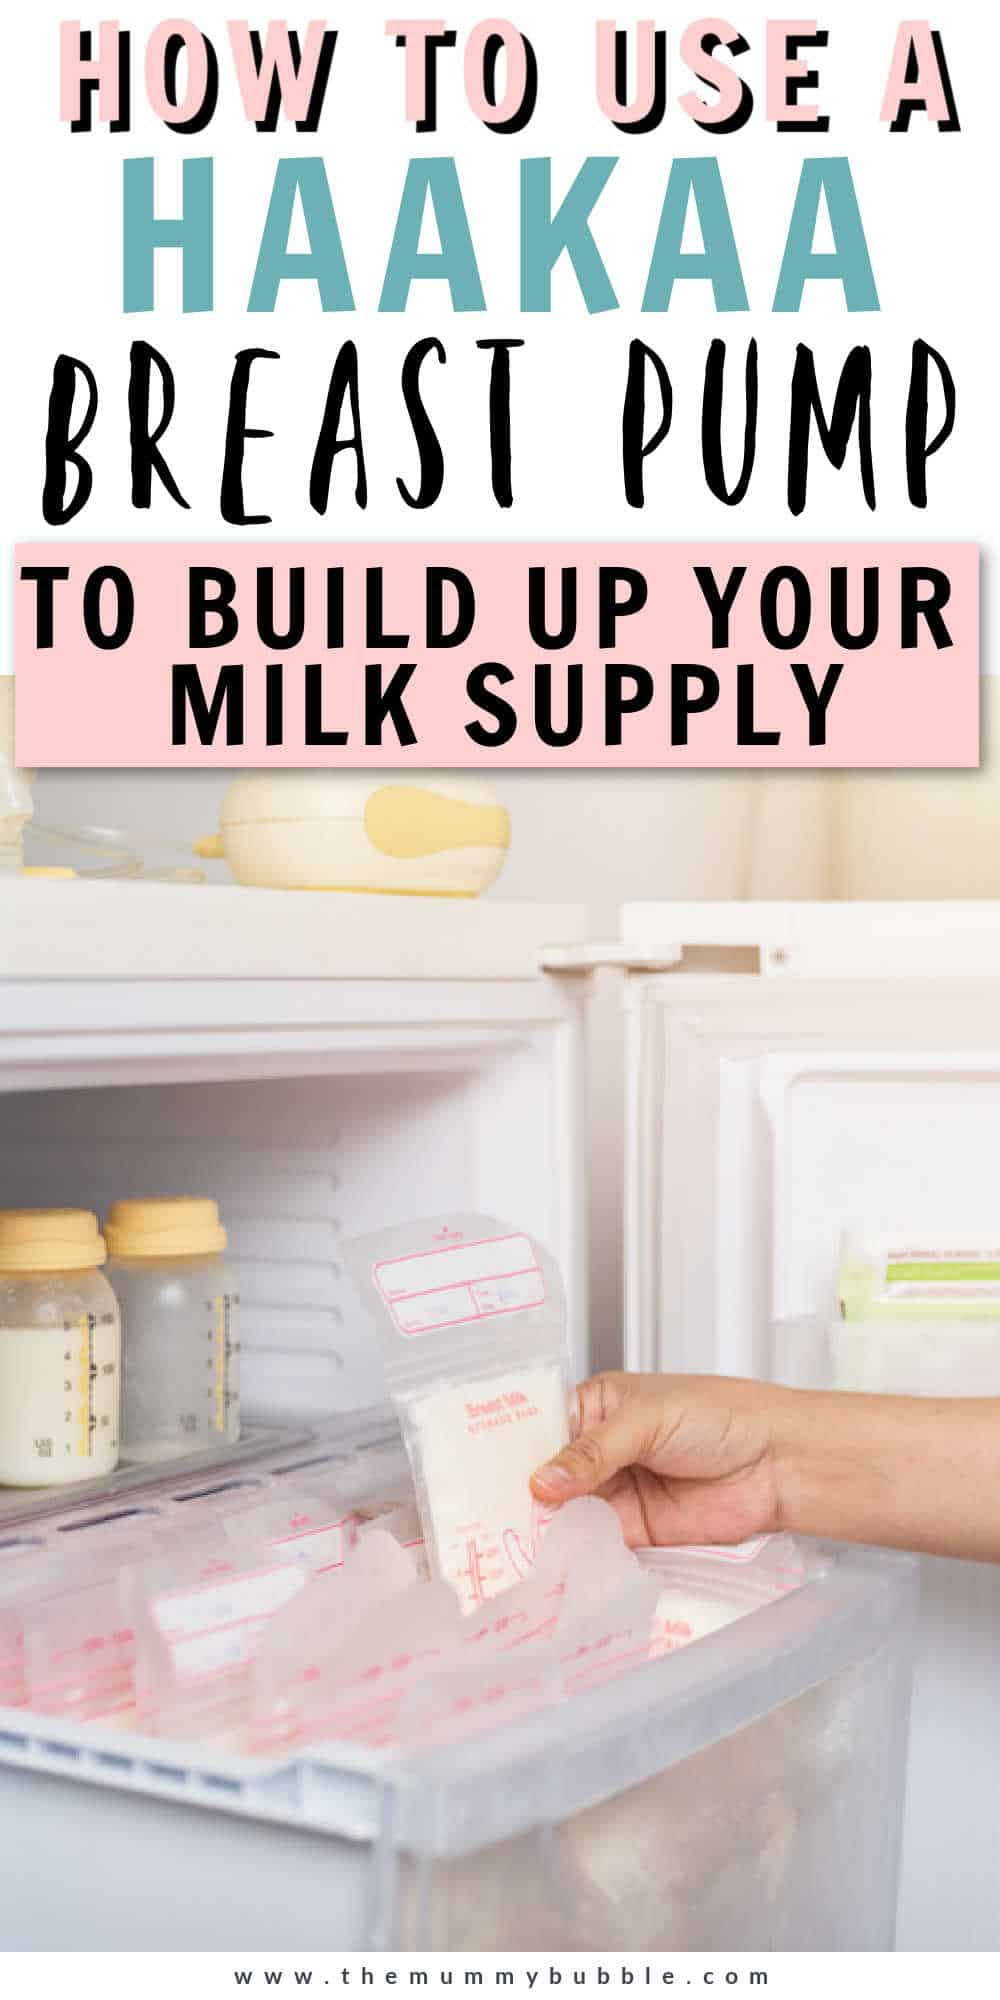 How to use a Haakaa breast pump to build up your milk supply and collect more breast milk